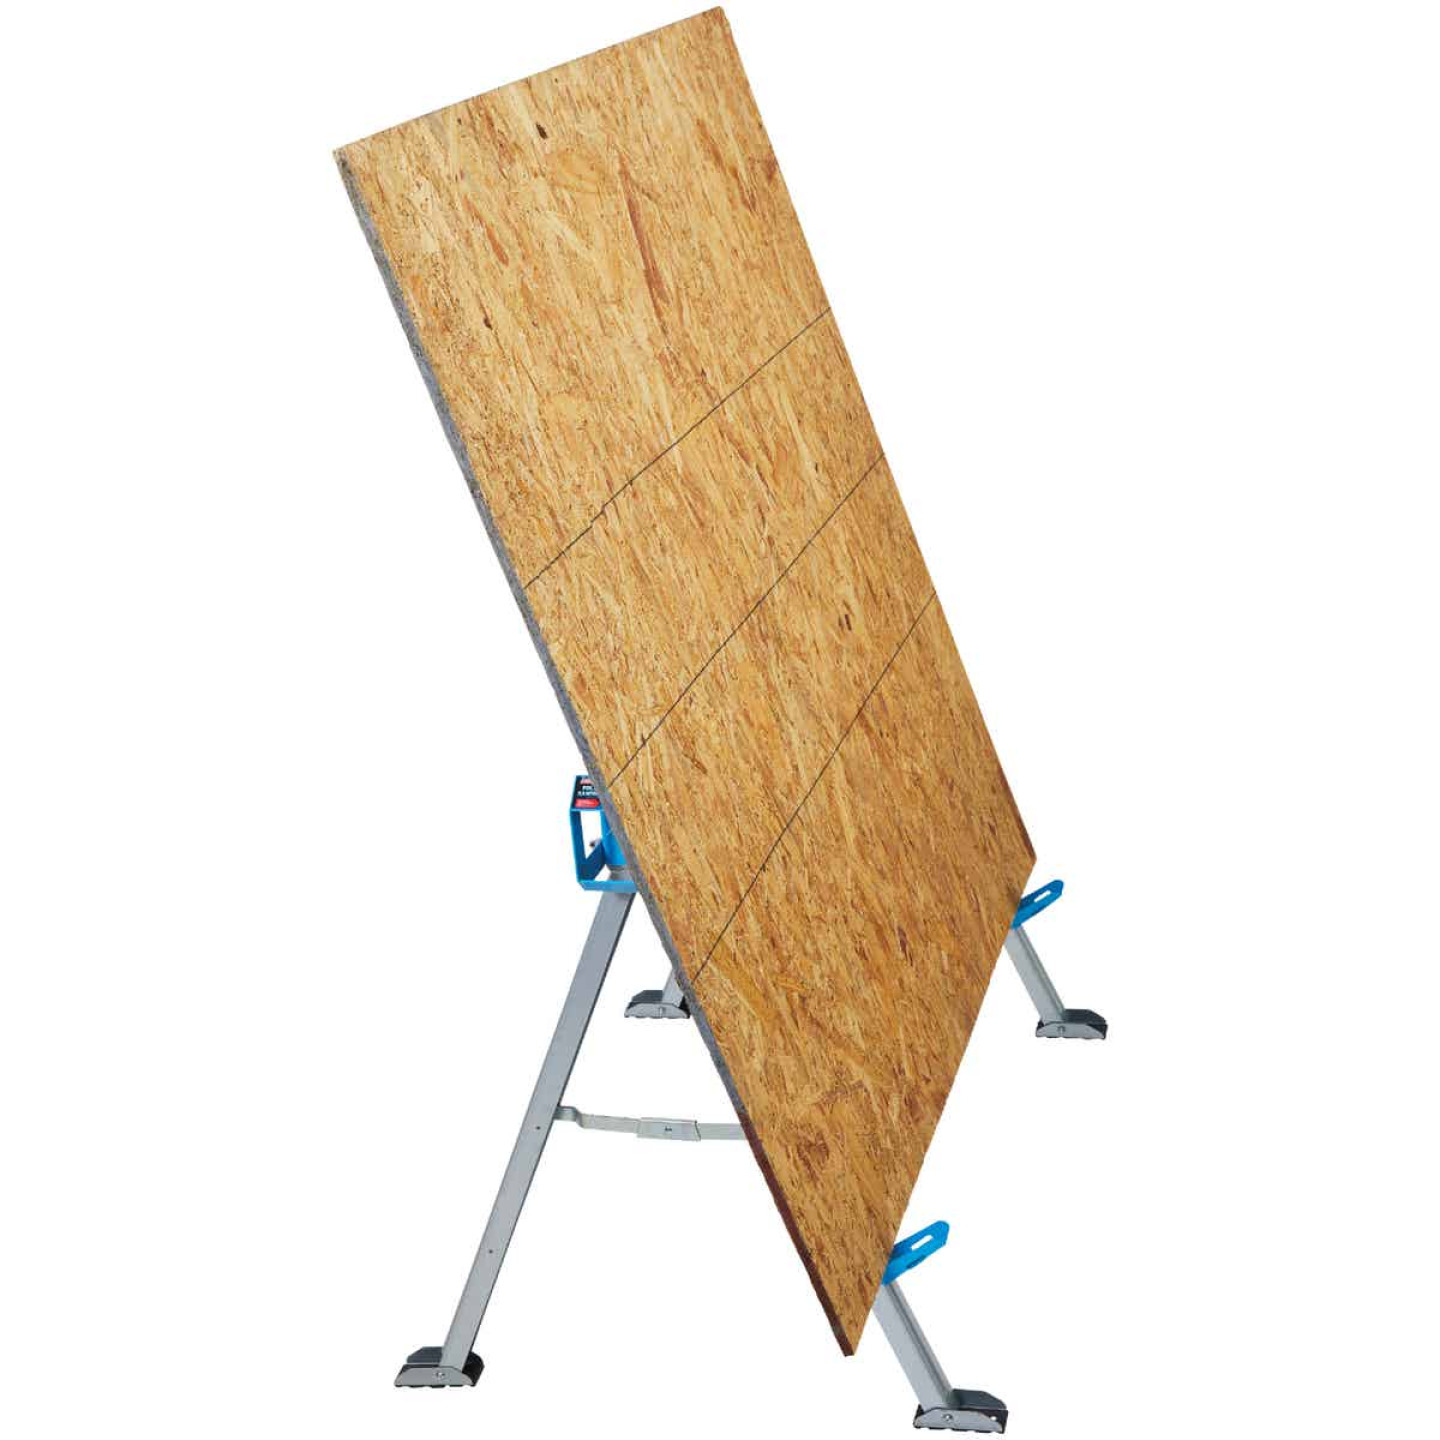 Channellock 46-1/2 In. L Steel Folding Sawhorse, 2200 Lb. Capacity Image 4